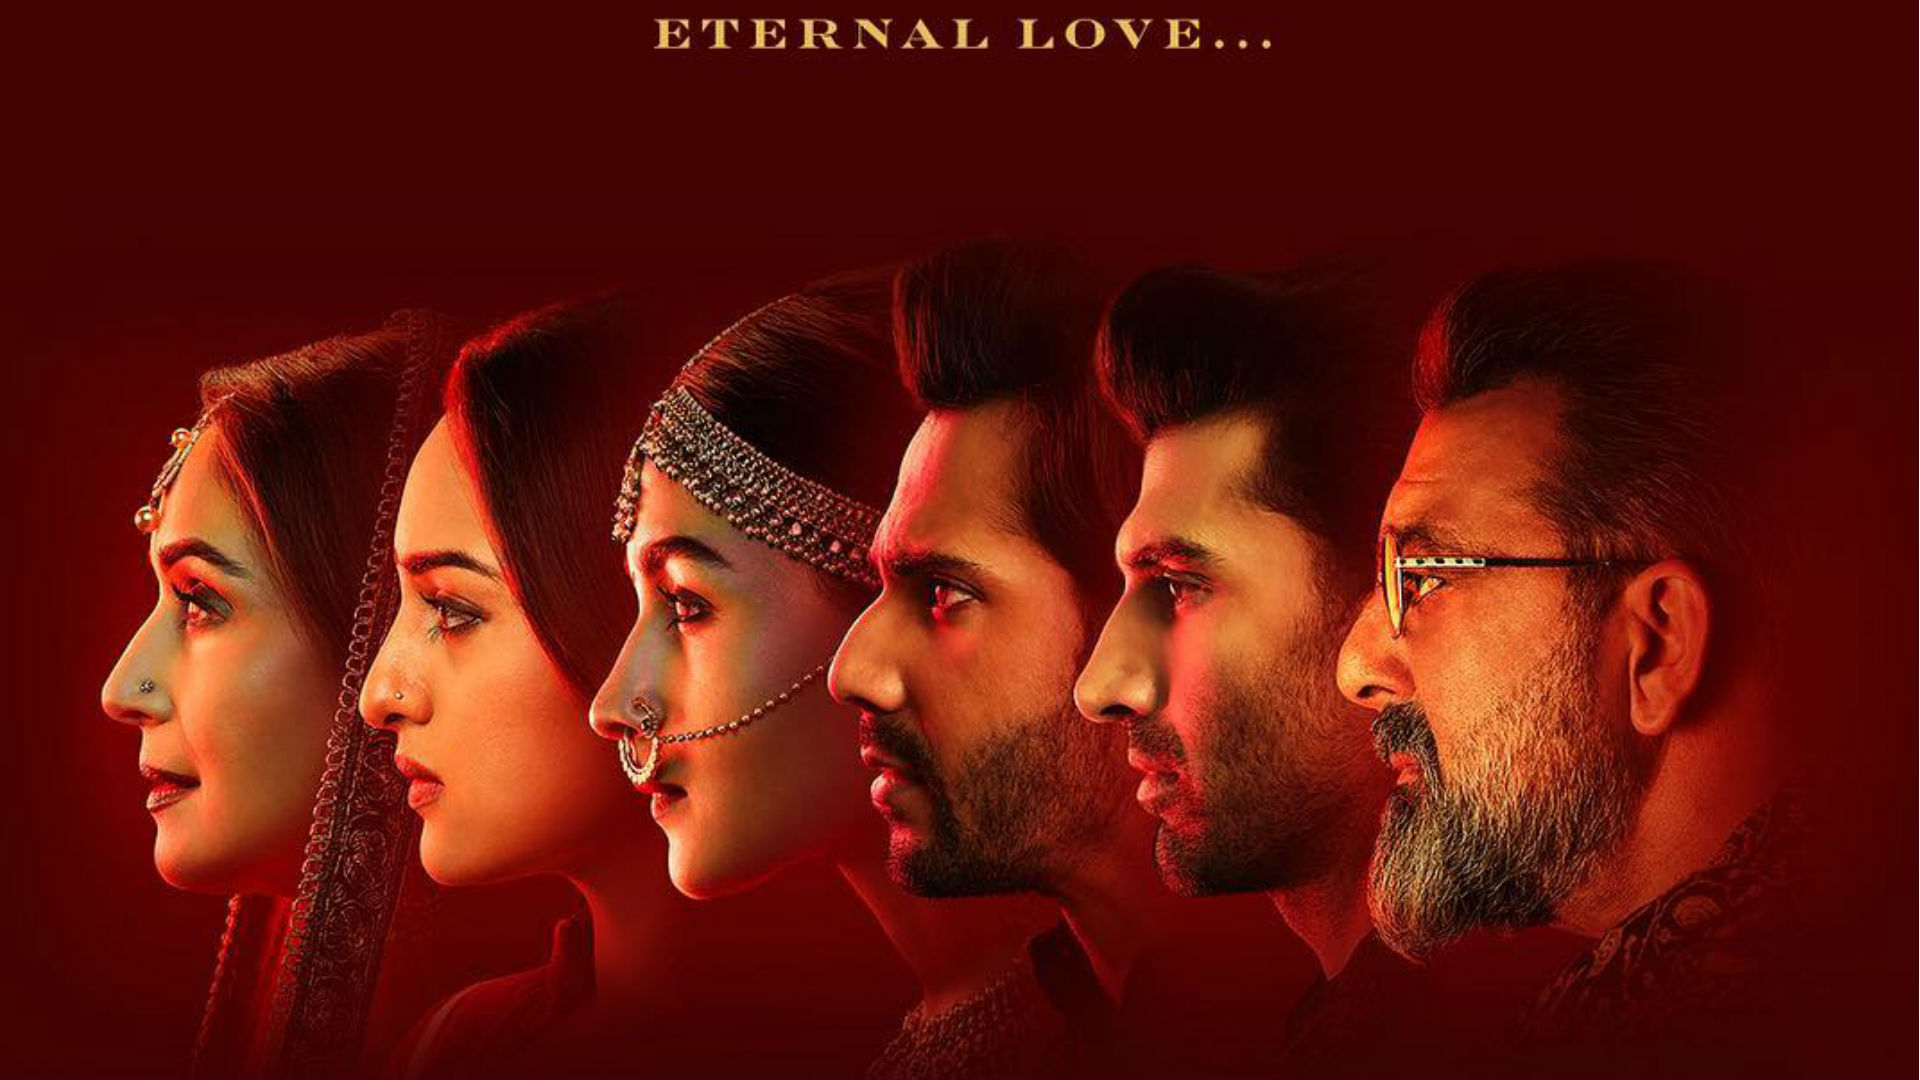 Kalank Film Karan Johar Shares World Of Kalank Video Varun